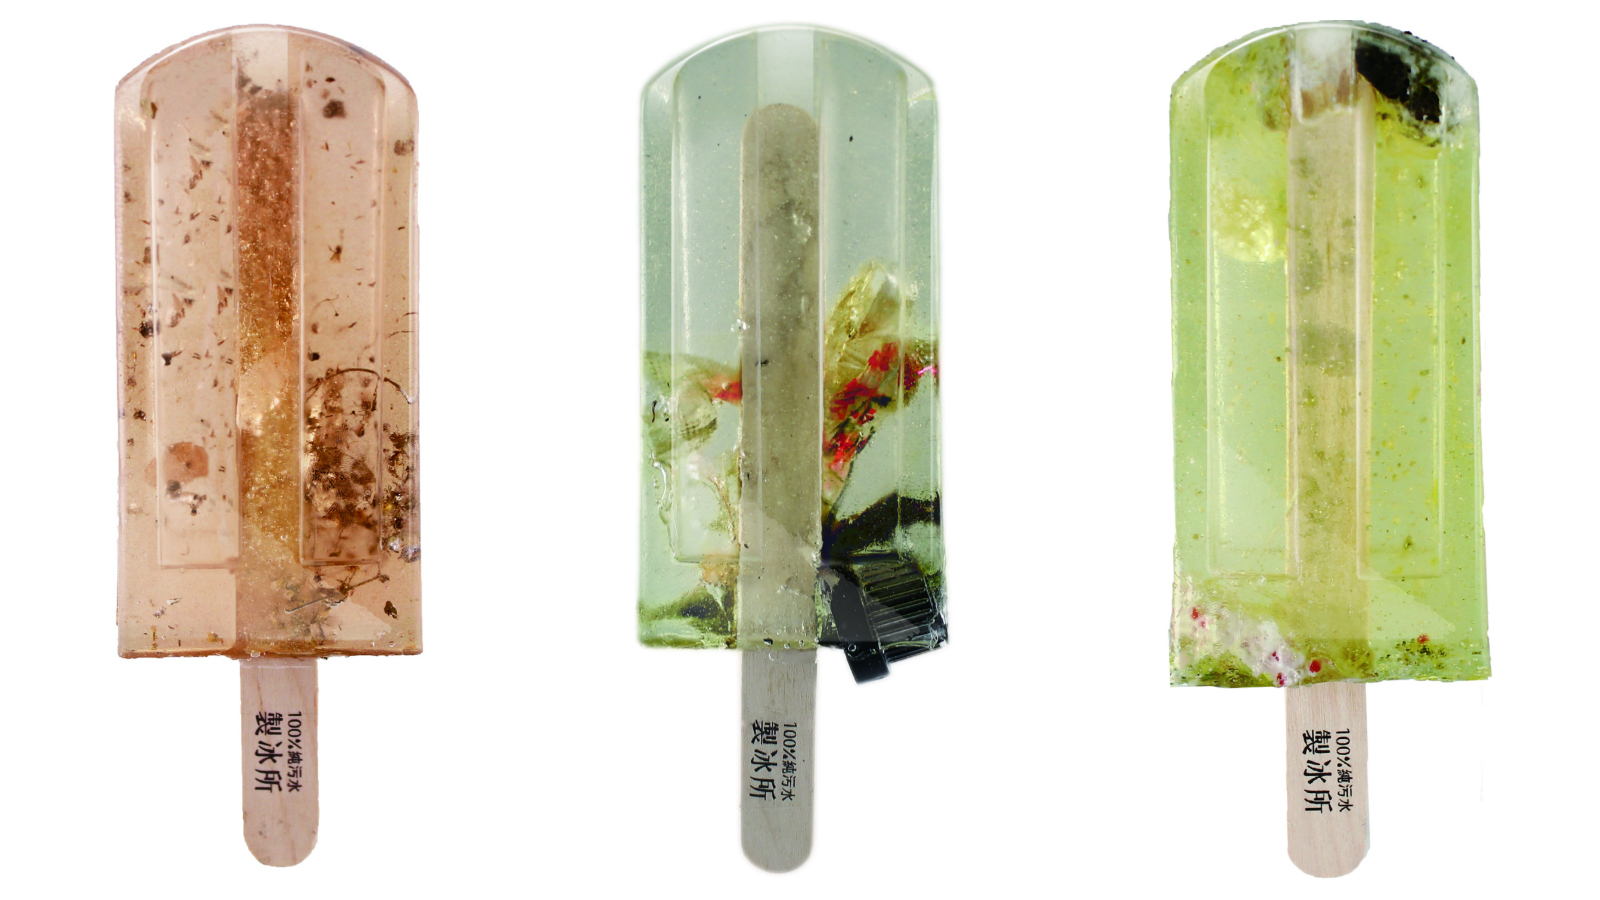 aa14a1c21fdf These popsicles are made from polluted water - CNN Style